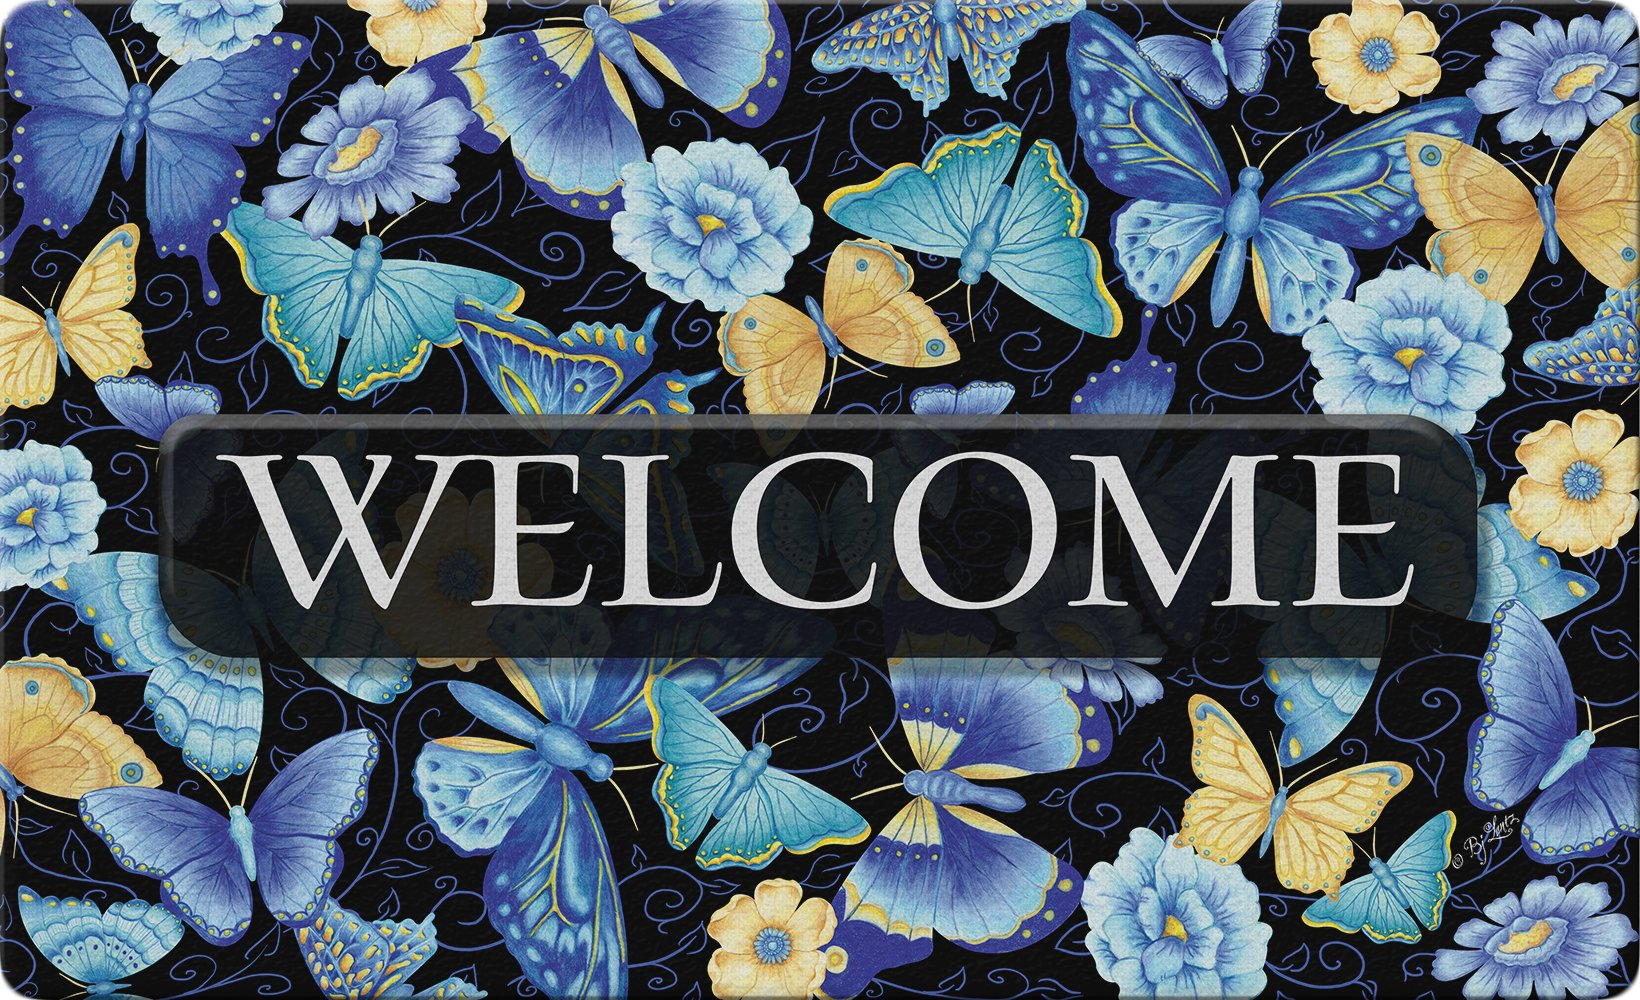 Toland Home Garden Blue Butterfly Welcome 18 x 30 Inch Decorative Flower Floor Mat Colorful Doormat